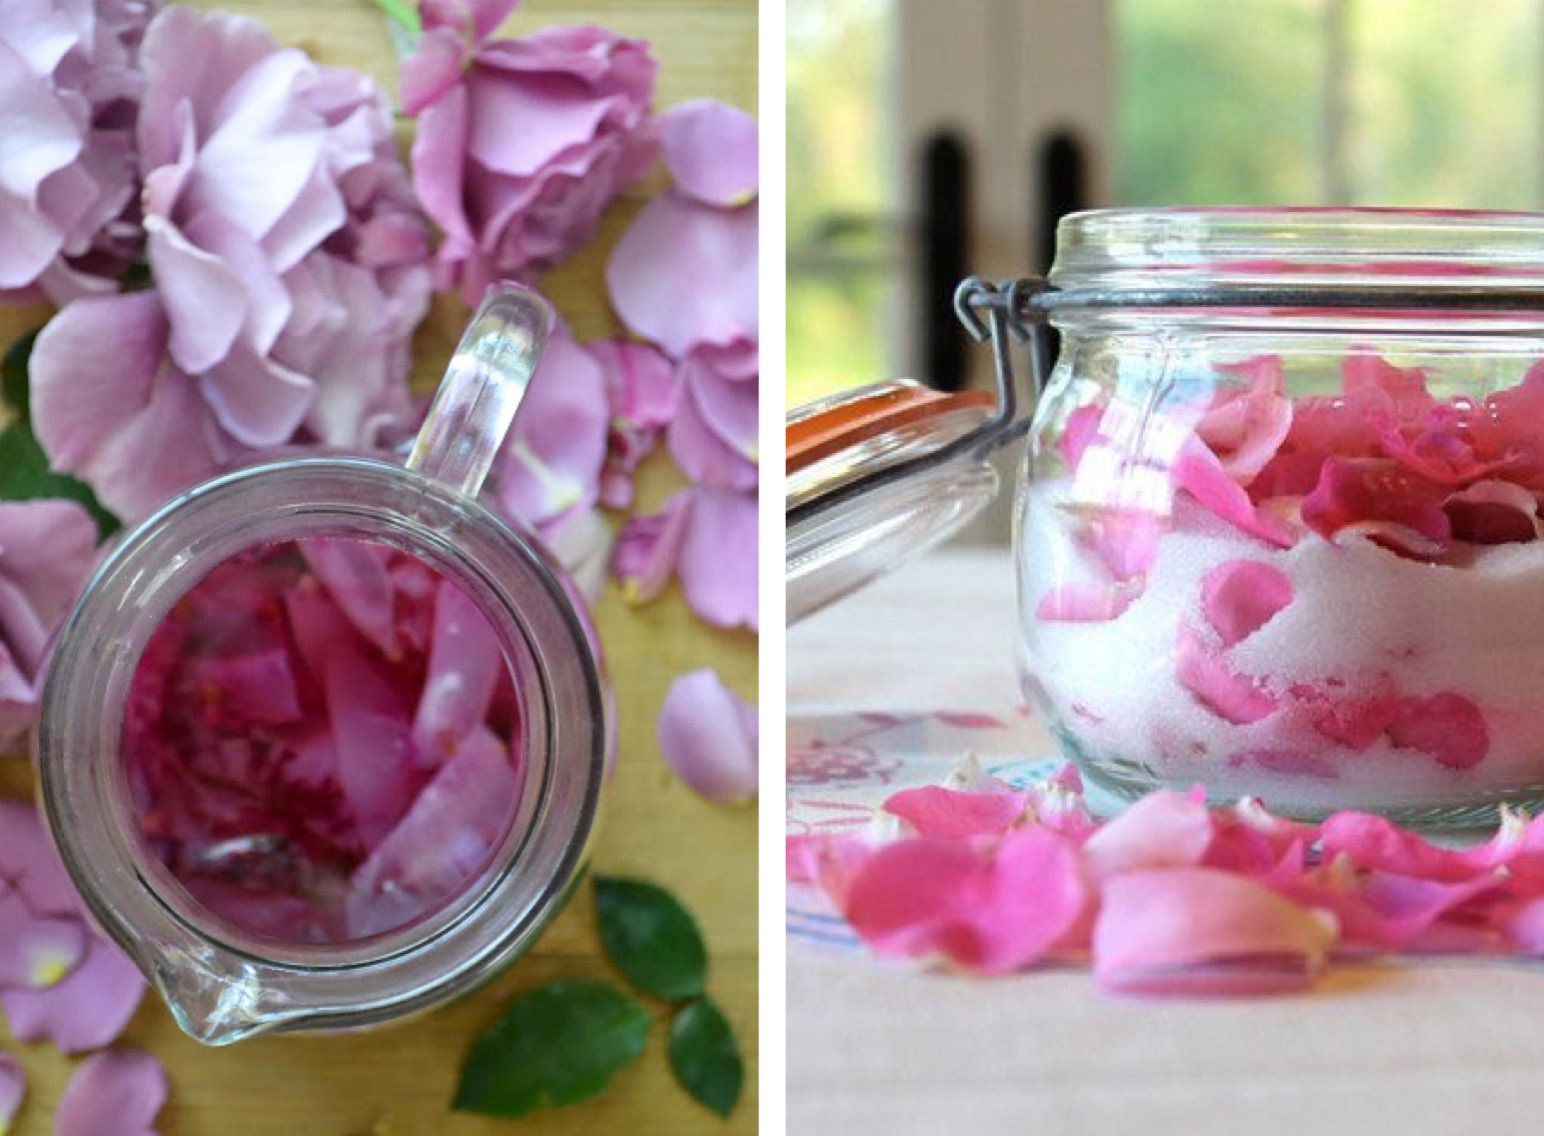 Rose Syrup & Rose Sugar - the Round Up of Rose Recipes via @PagingSupermom